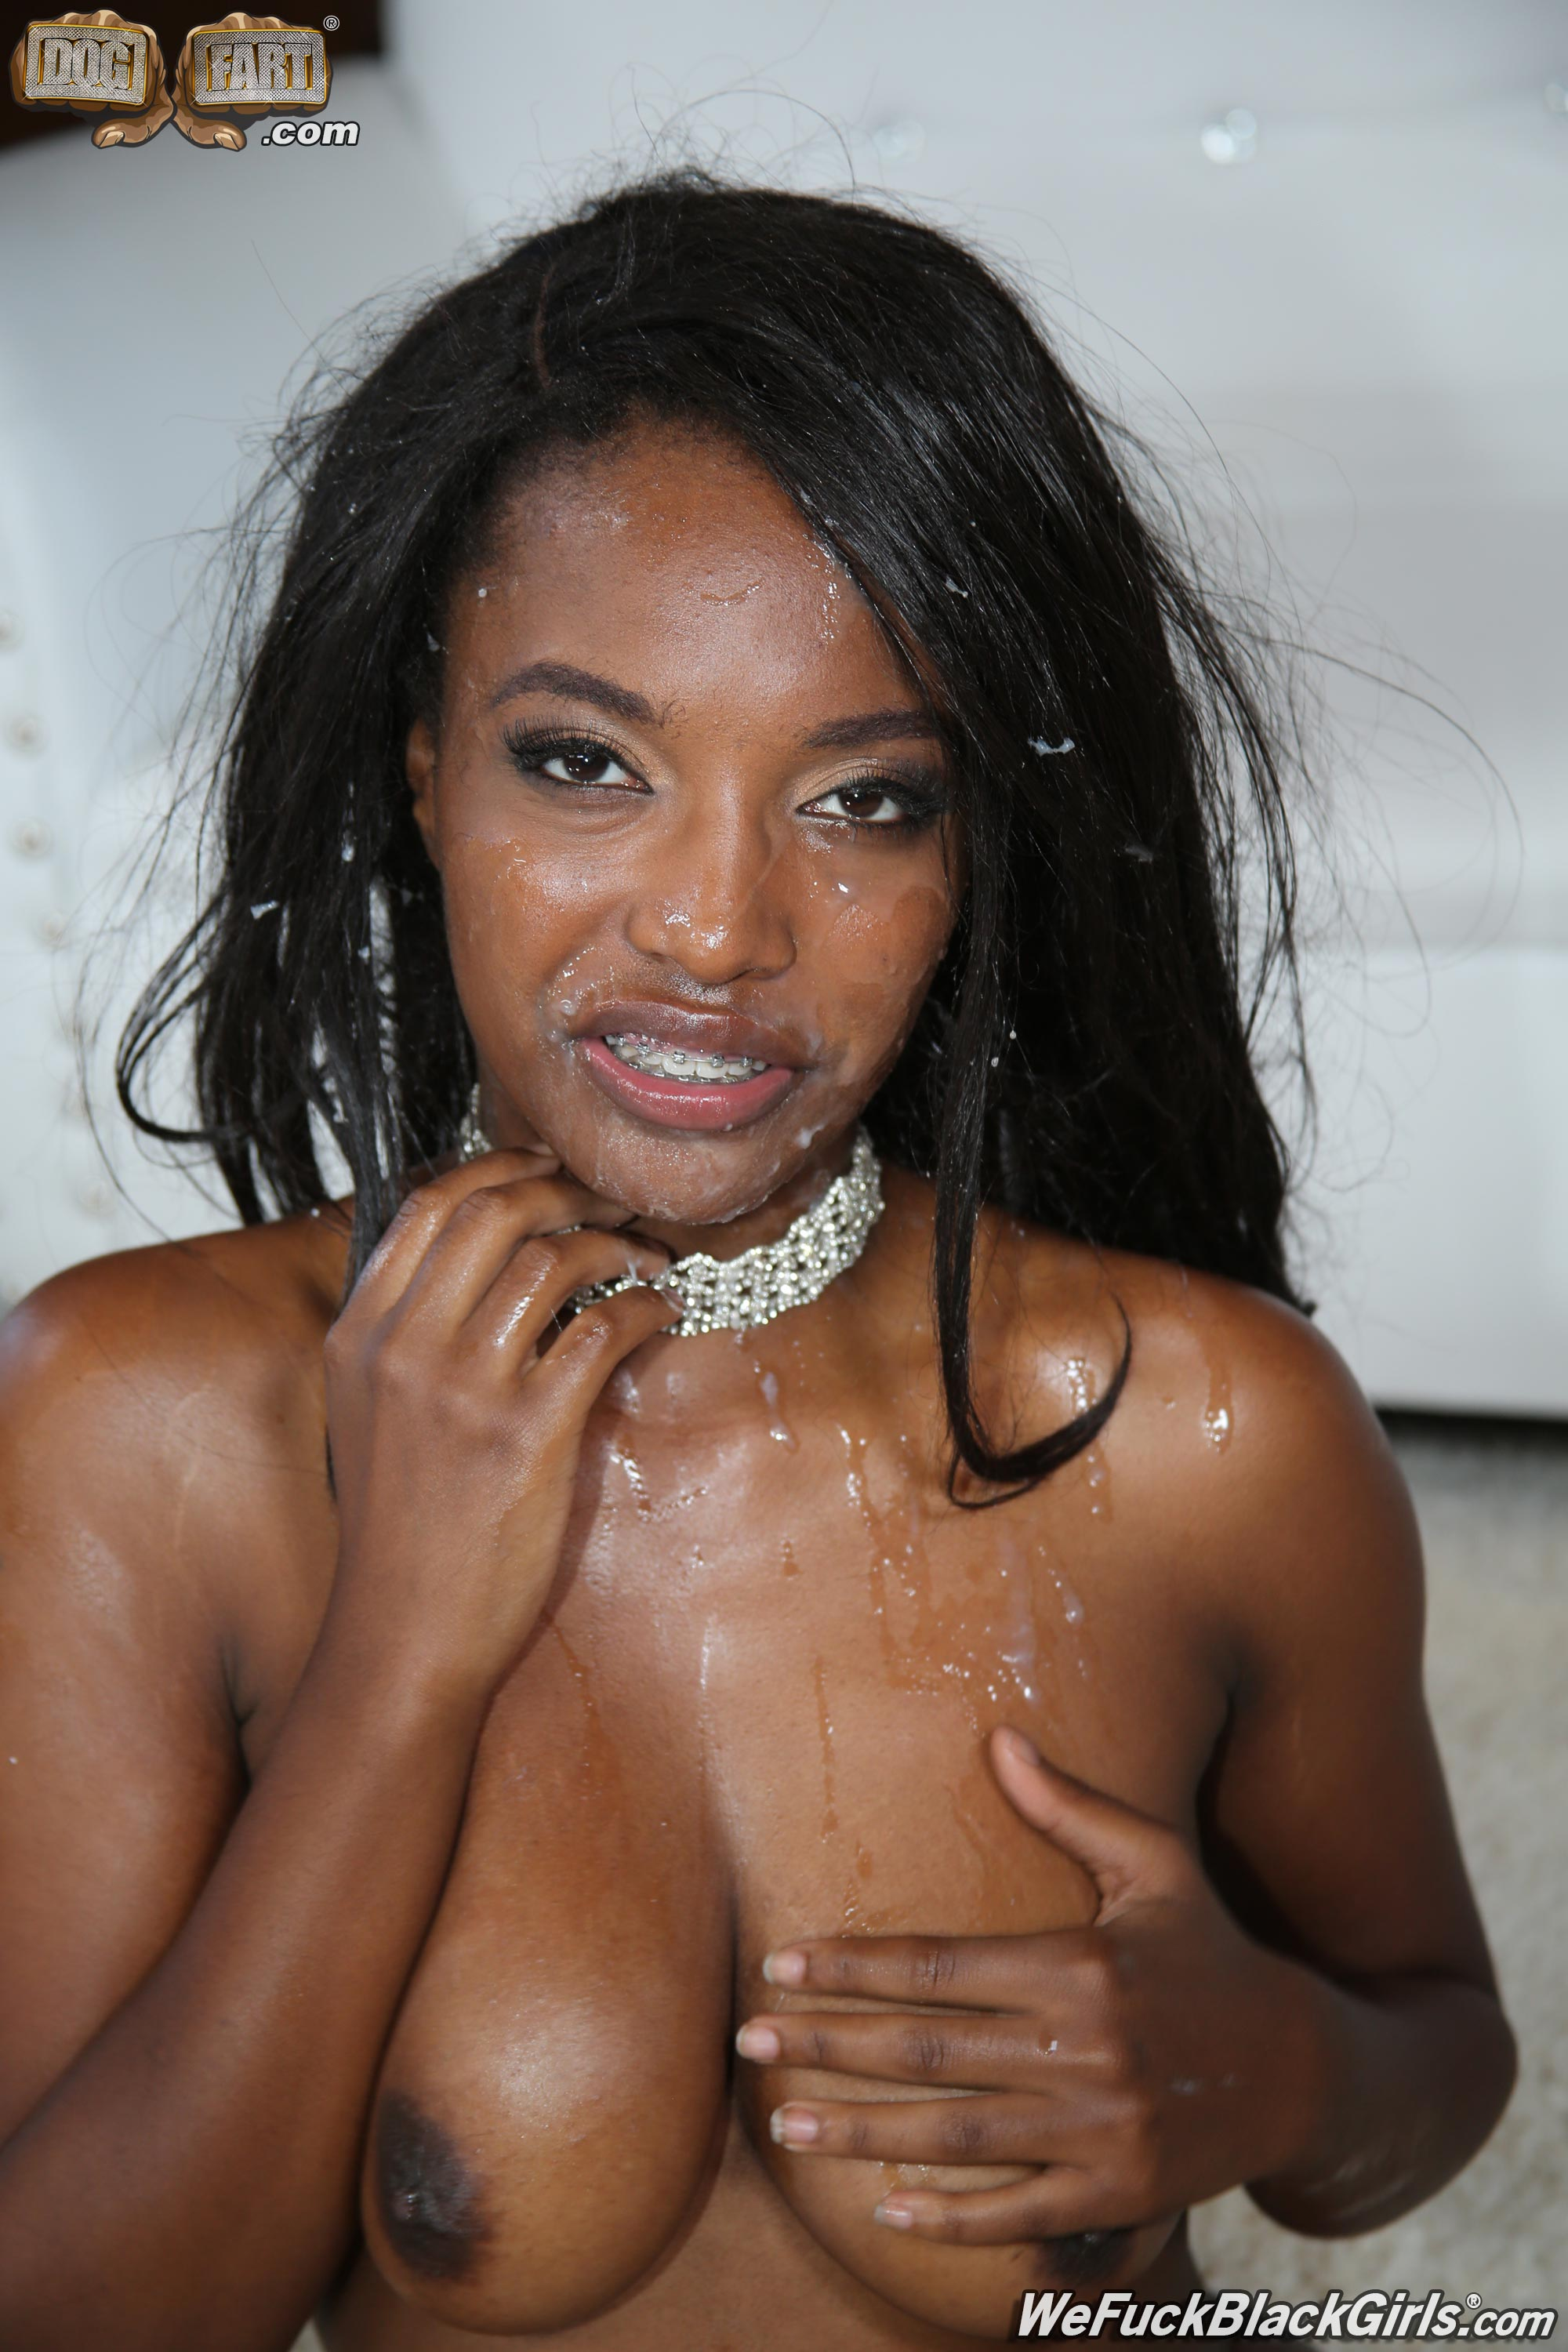 Dogfart 'Daya Knight - We Fuck Black Girls - Scene 2' starring Daya Knight (photo 30)